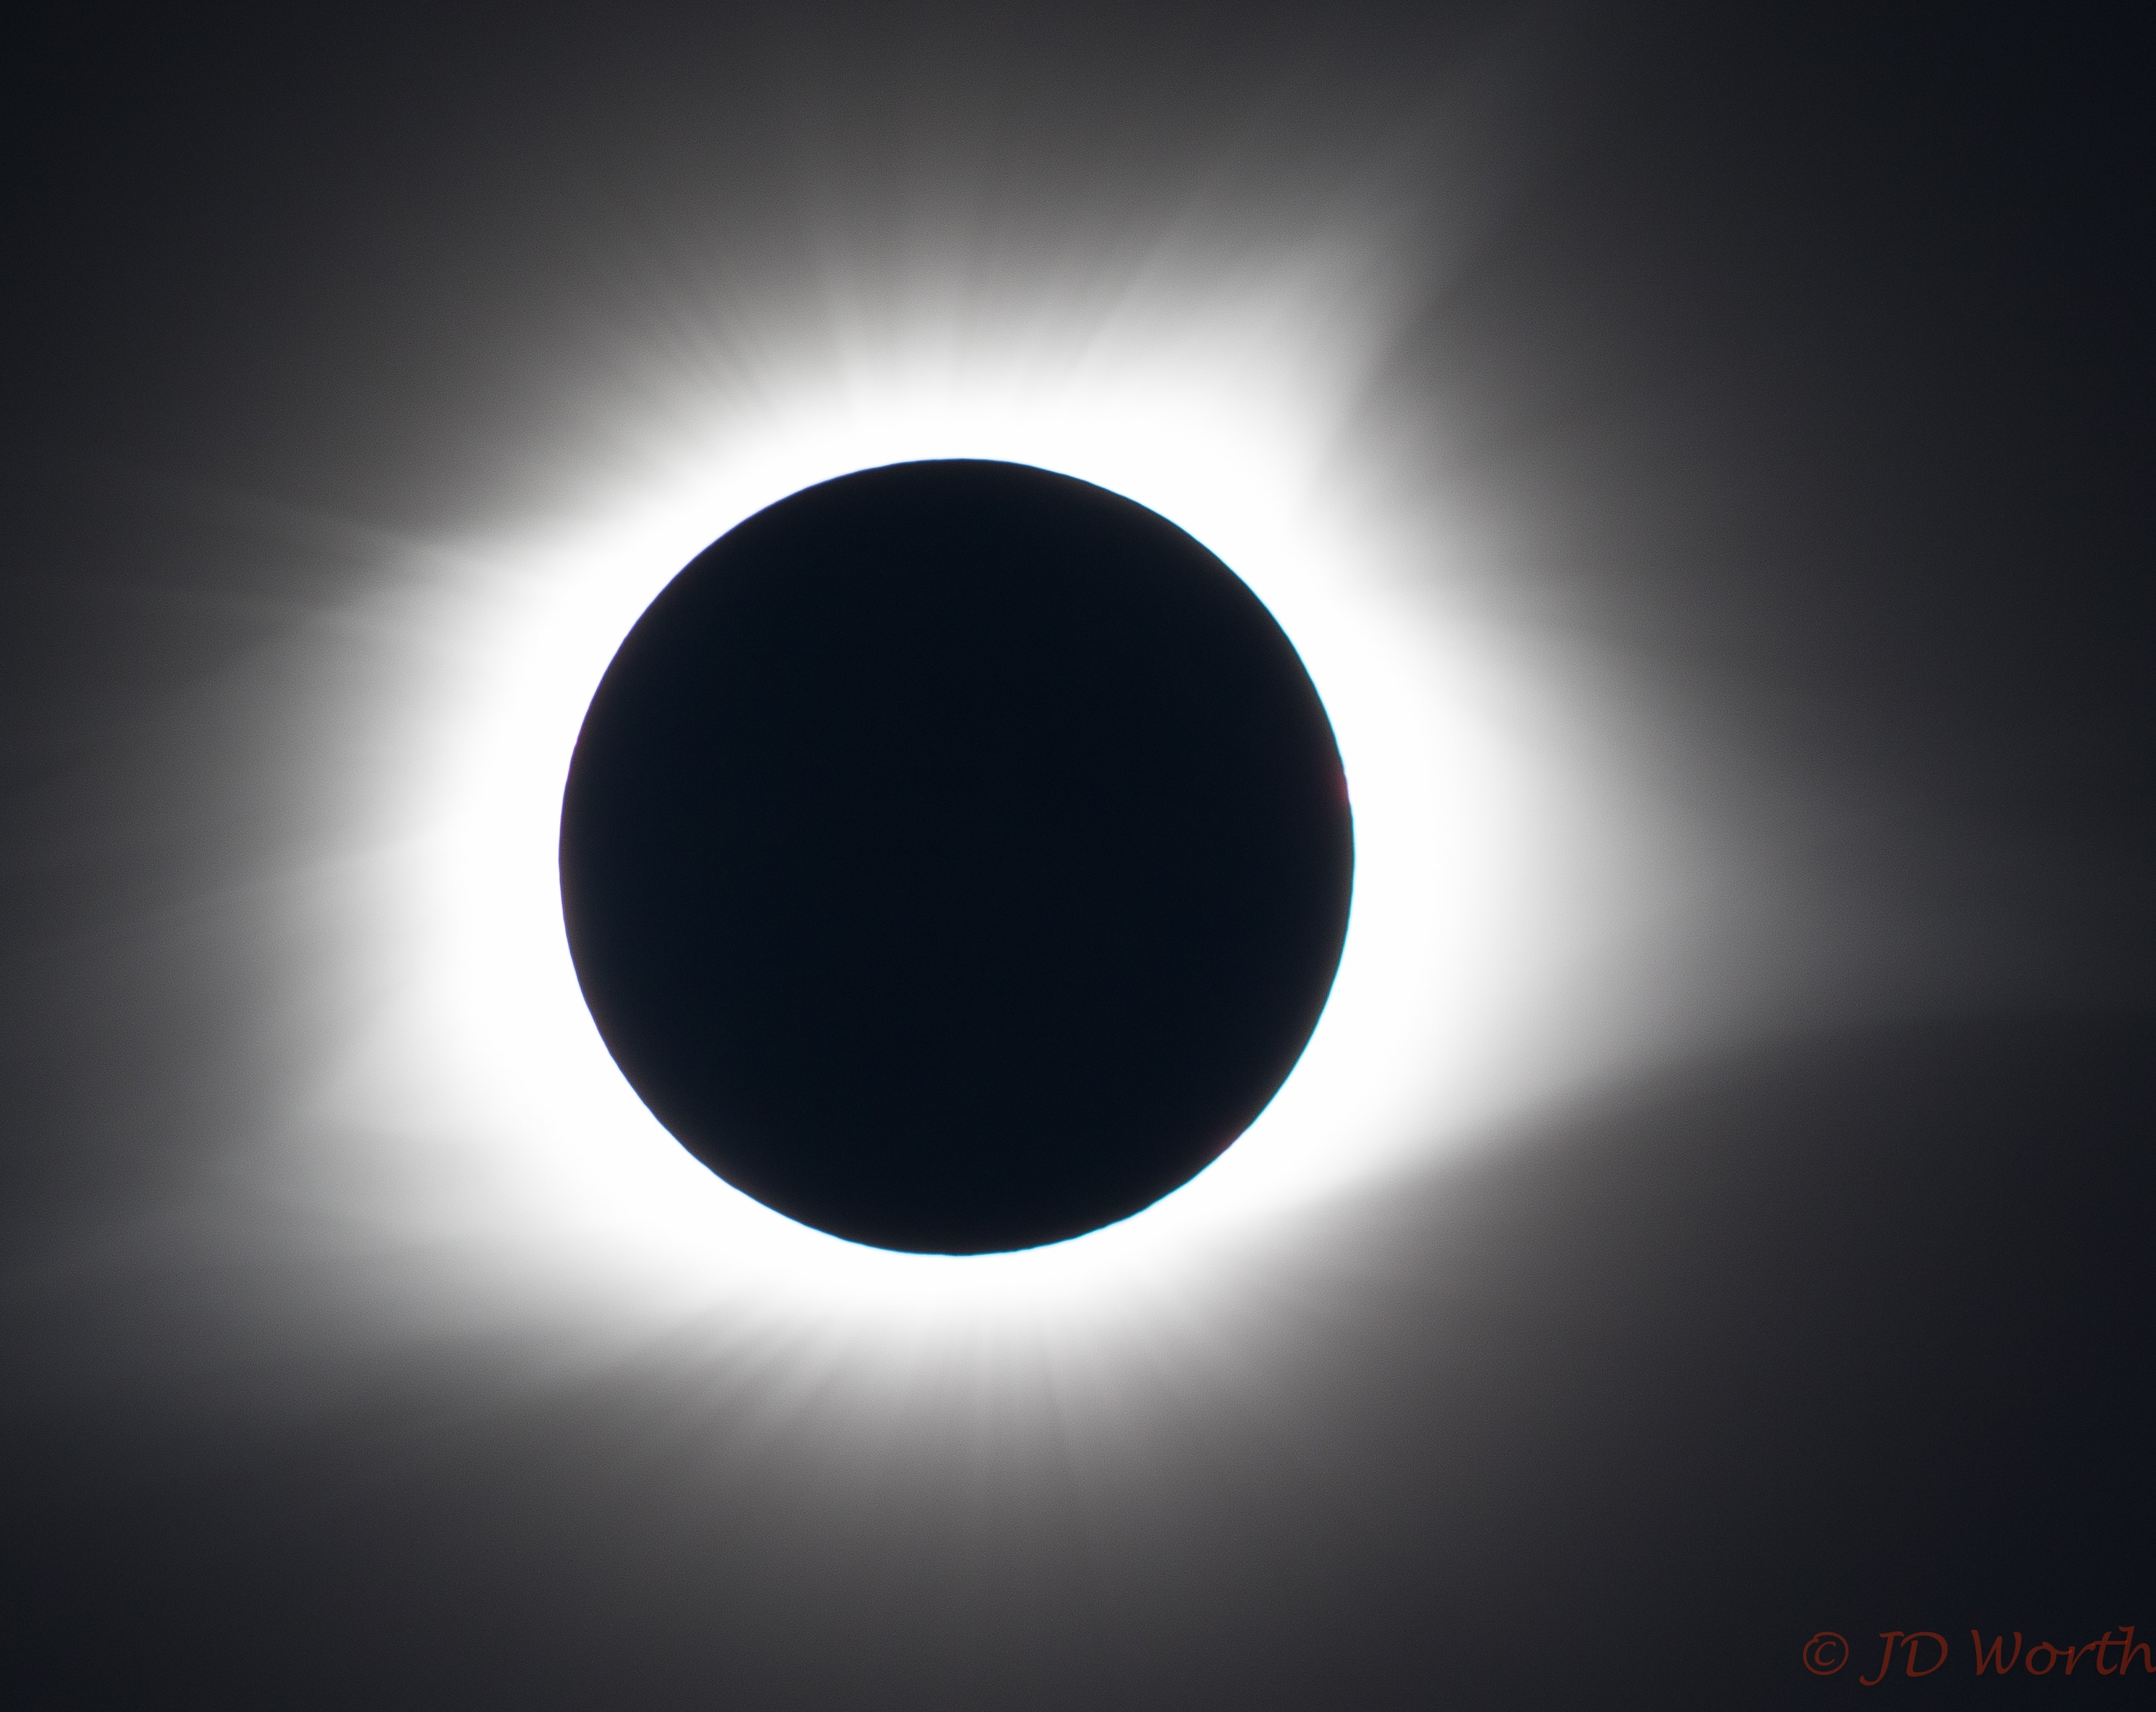 A year ago, a total solar eclipse captivated the nation